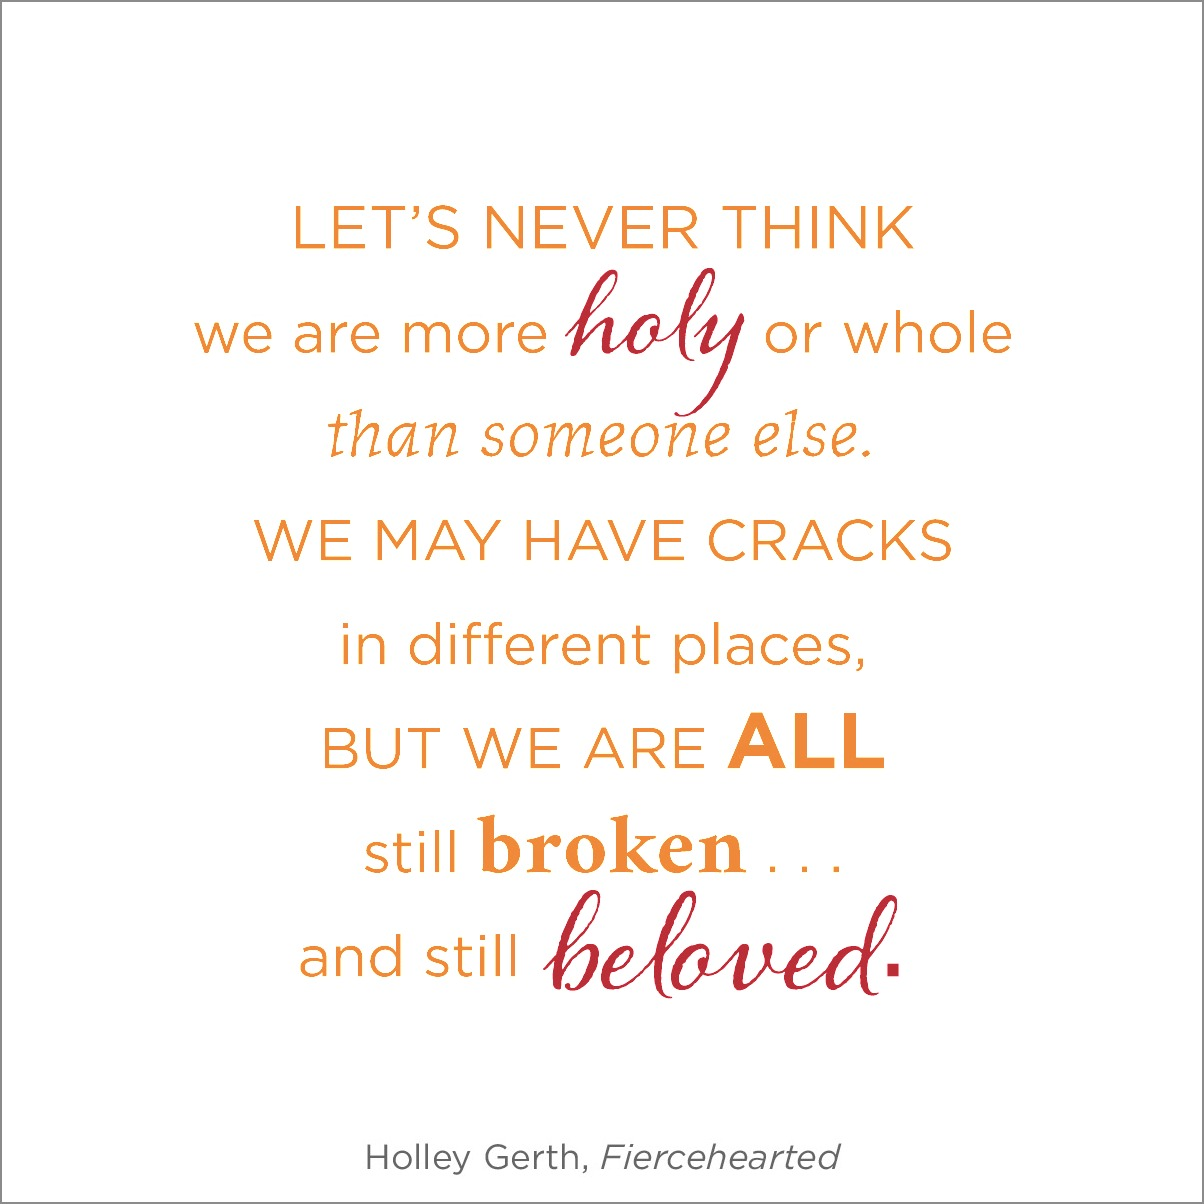 Let's never think we are more holy or whole than someone else...